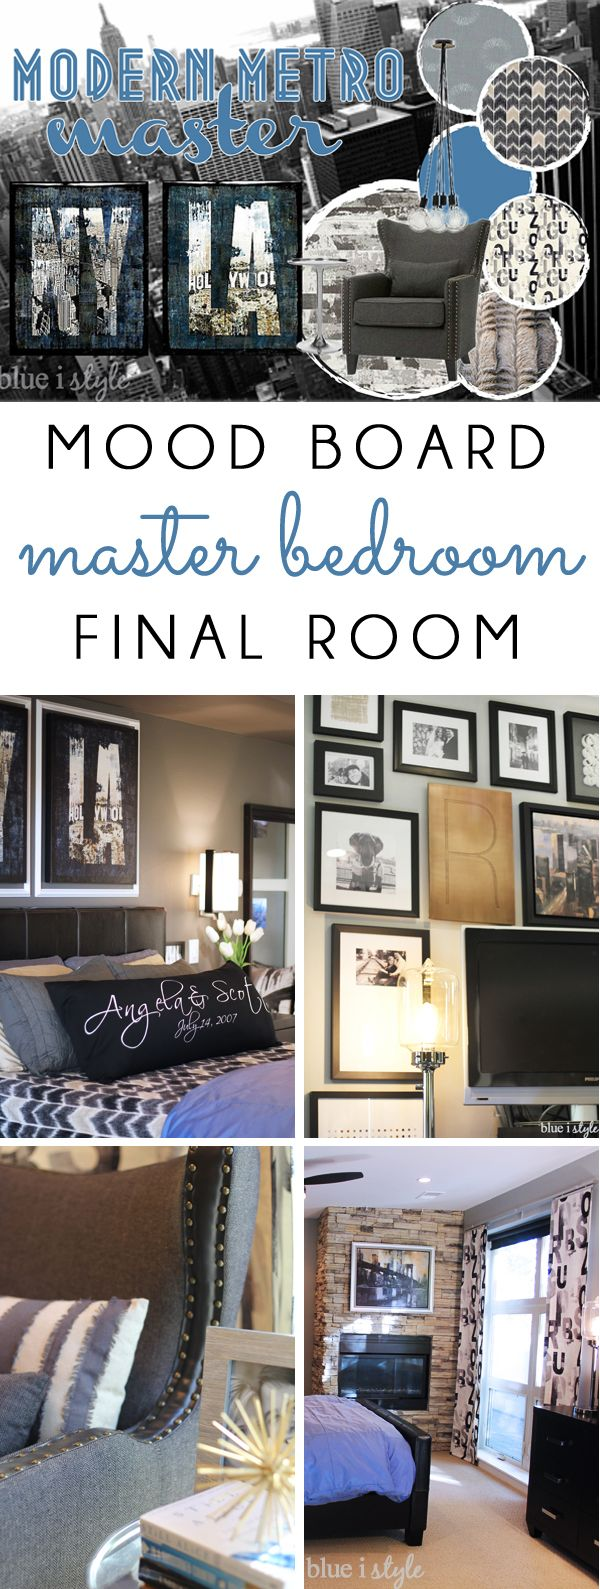 17 best images about bedroom style amp organization on